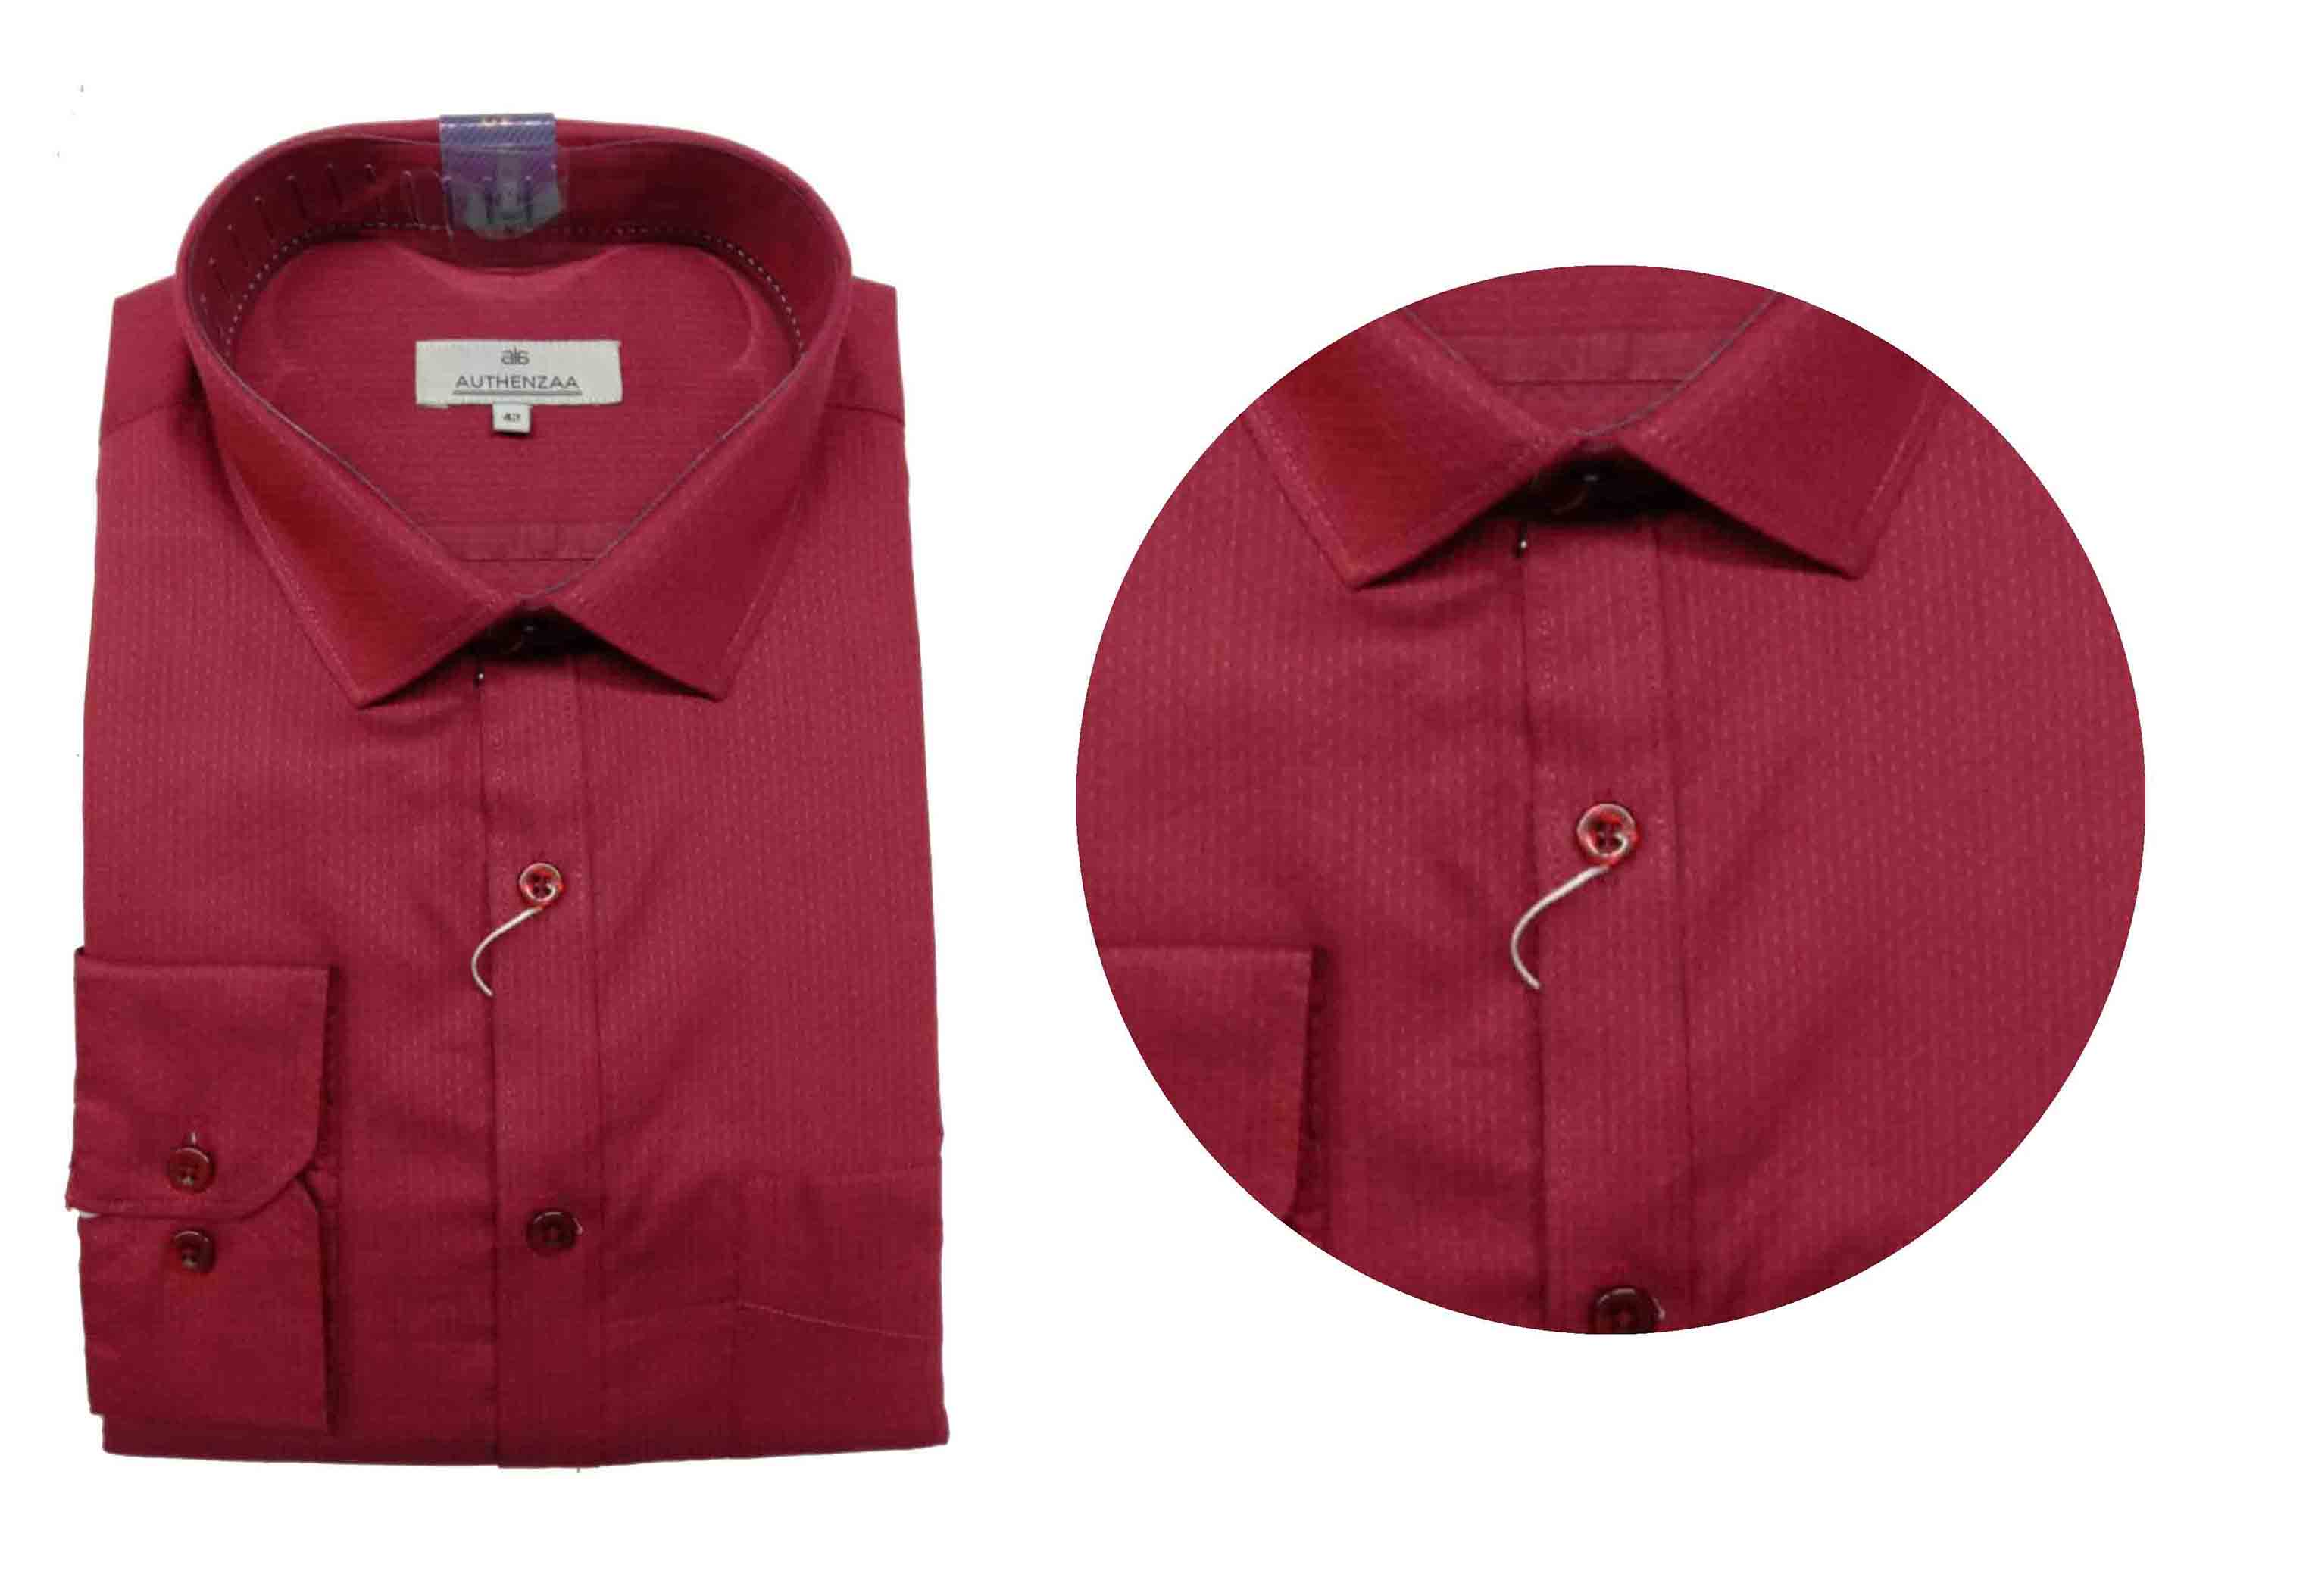 BT SEP 03 2019-MAROON DOT MEN'S FORMAL SHIRT